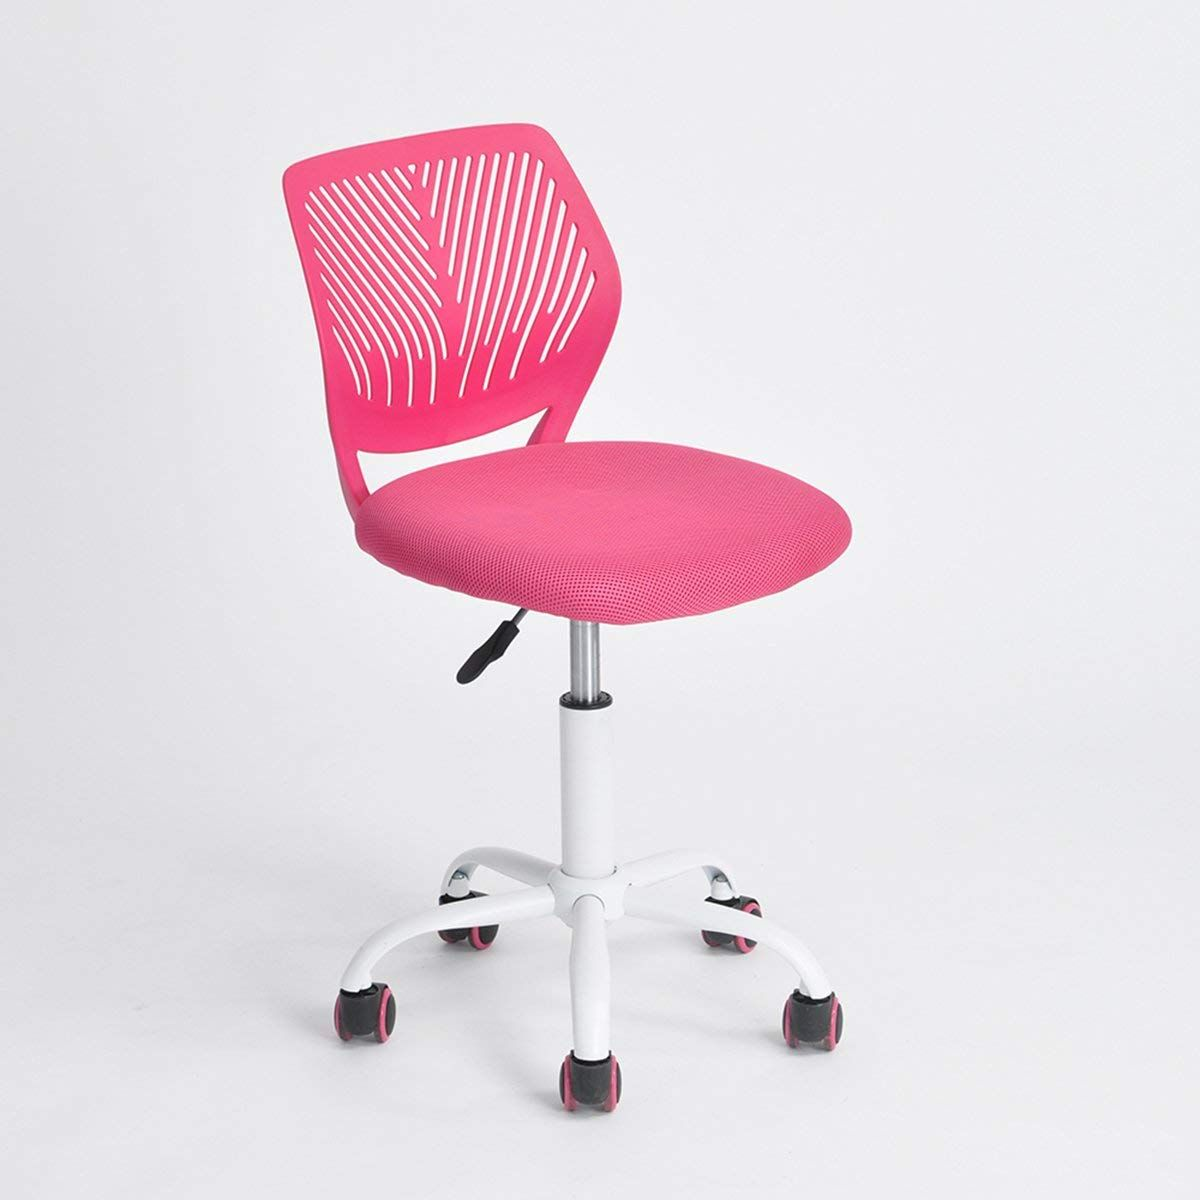 Kids Desk Chairs In Pretty Cute Styles Kids Desk Chair Pink Desk Chair Pink Office Chair